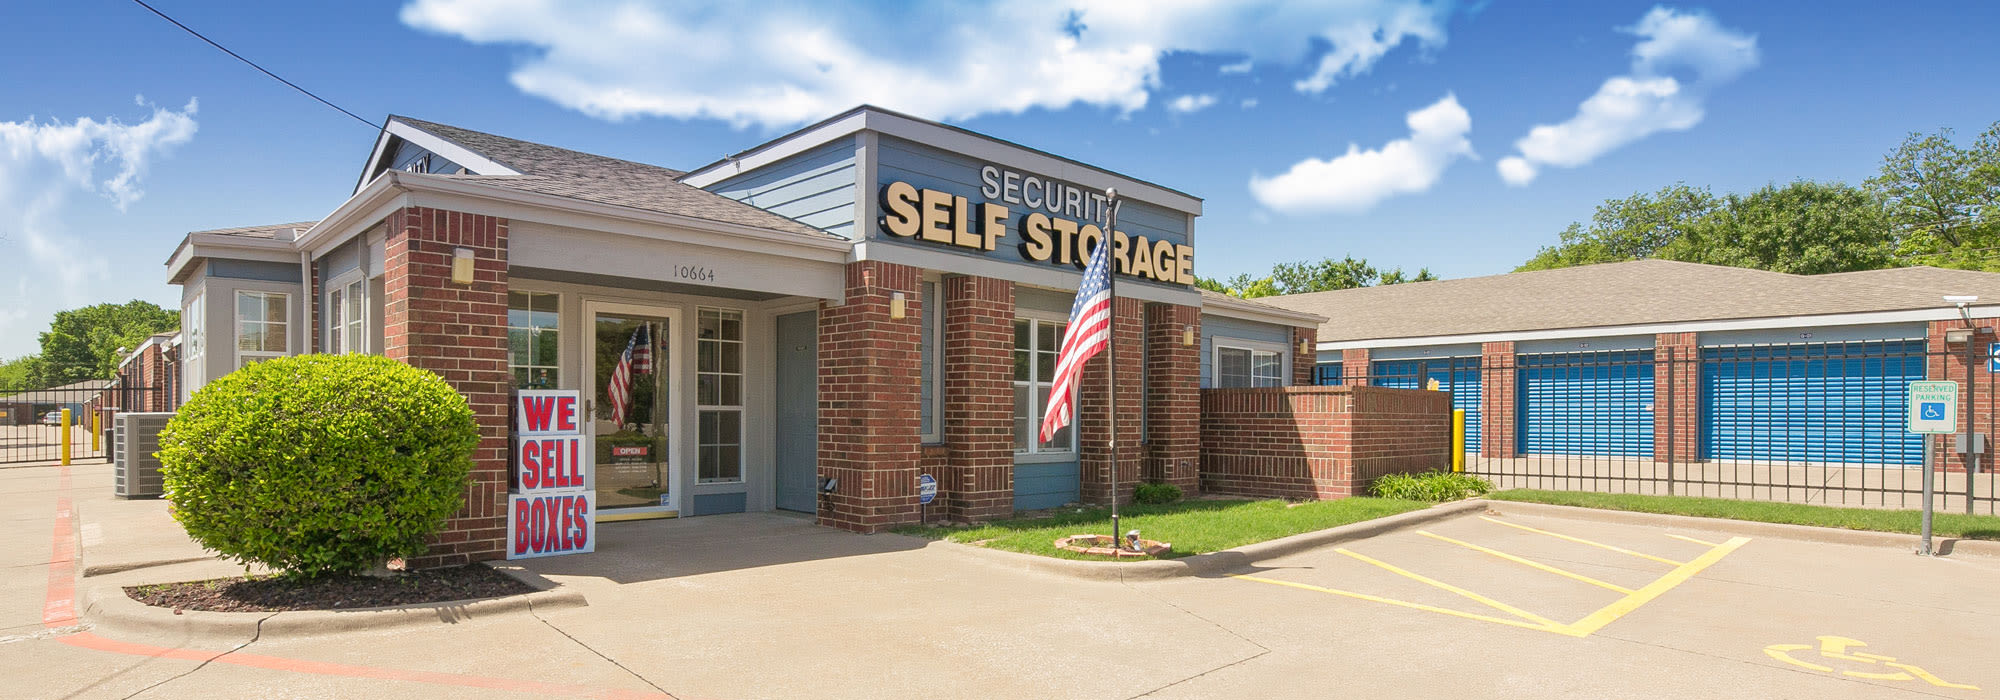 Self storage in Dallas TX